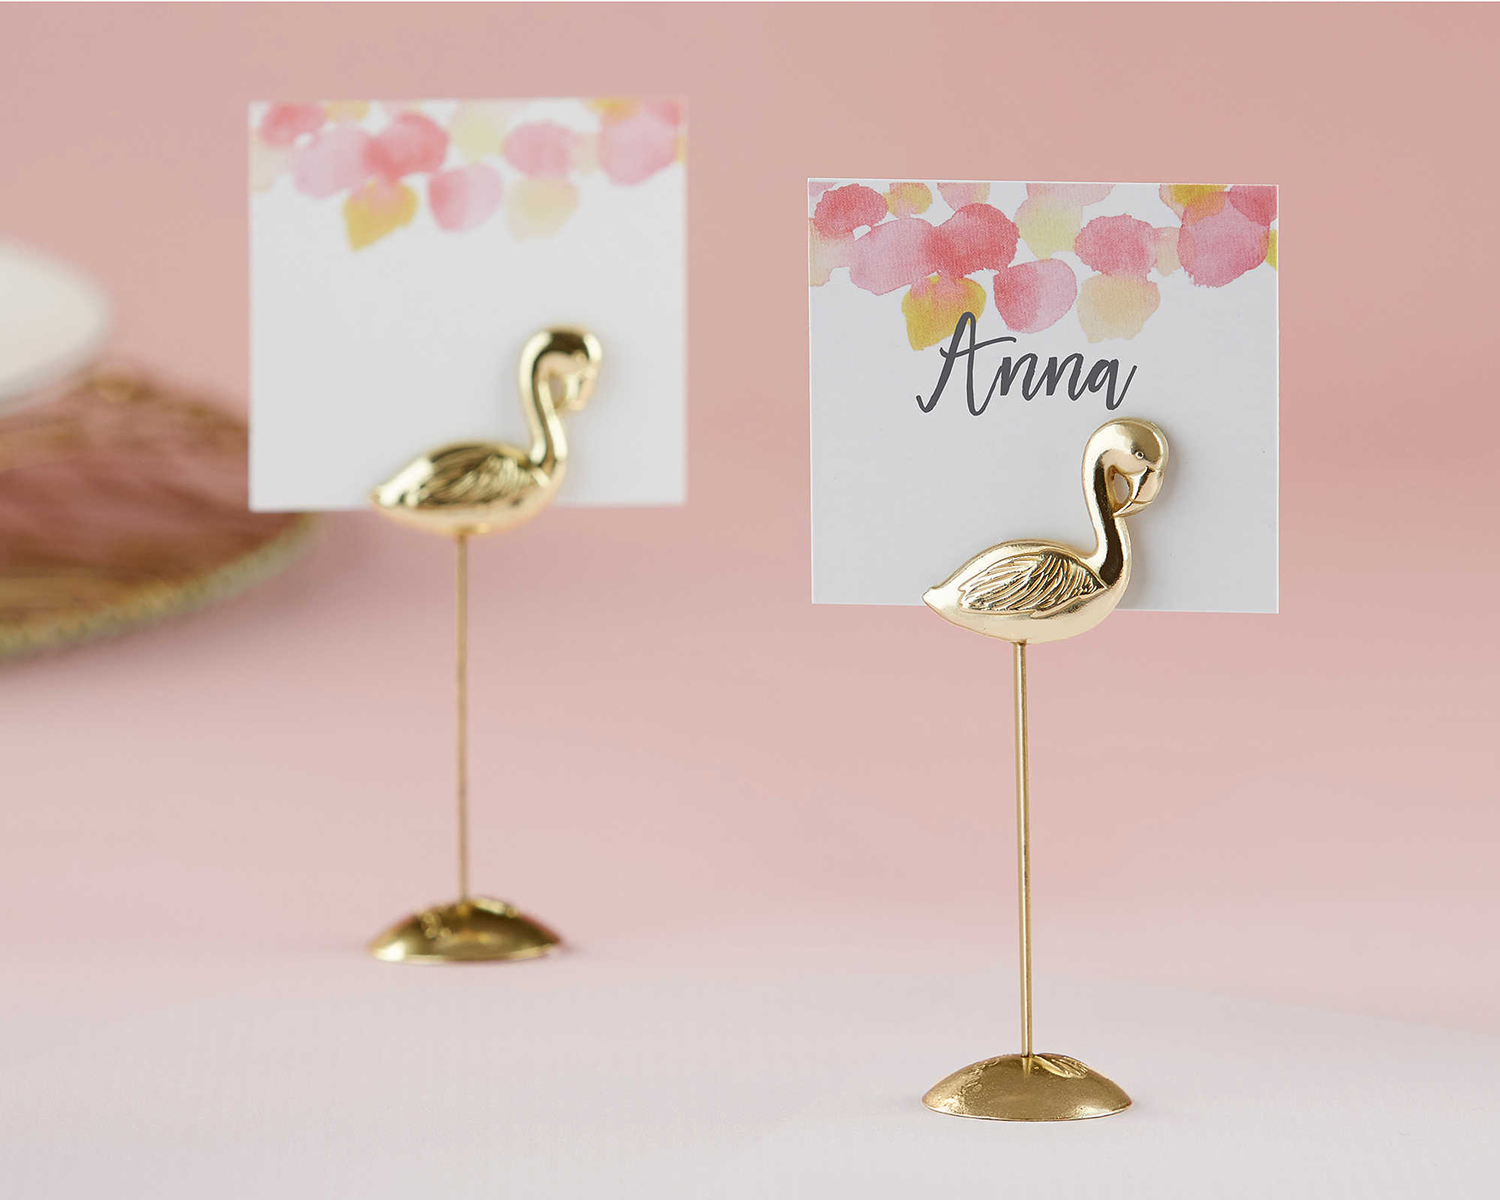 Flamingo place card holder wedding event party ideas accessories tropical beach theme